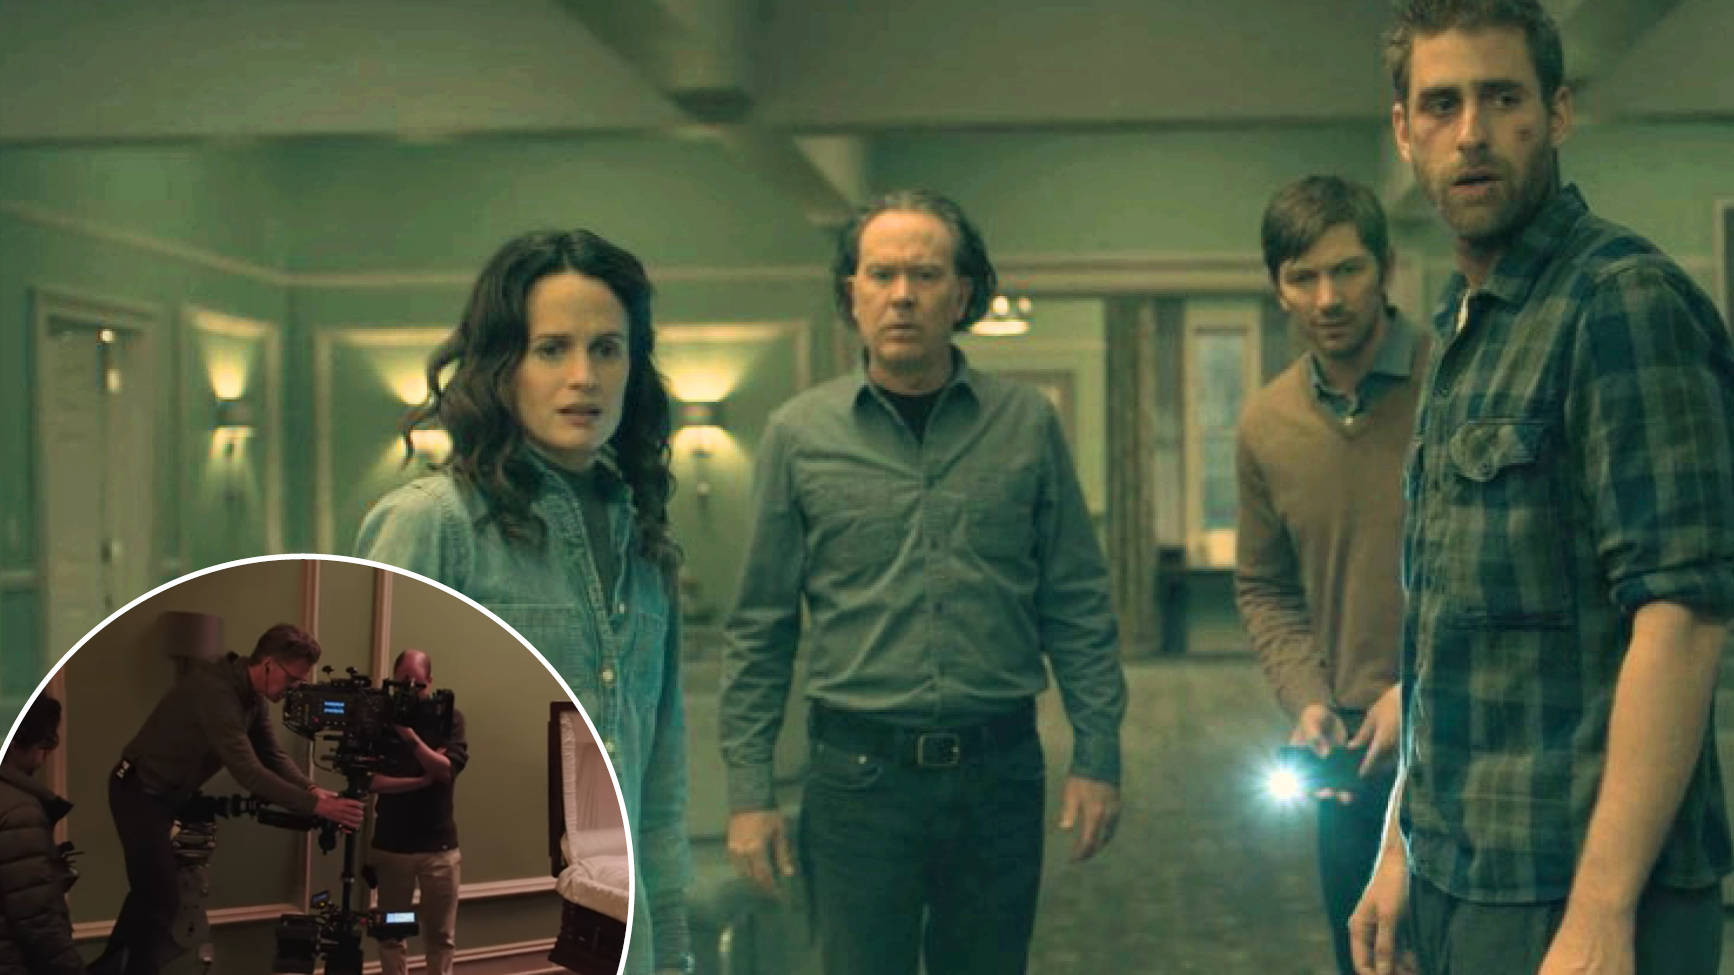 How The Haunting Of Hill House Pulled Off That Incredible Two Storms Episode Popbuzz